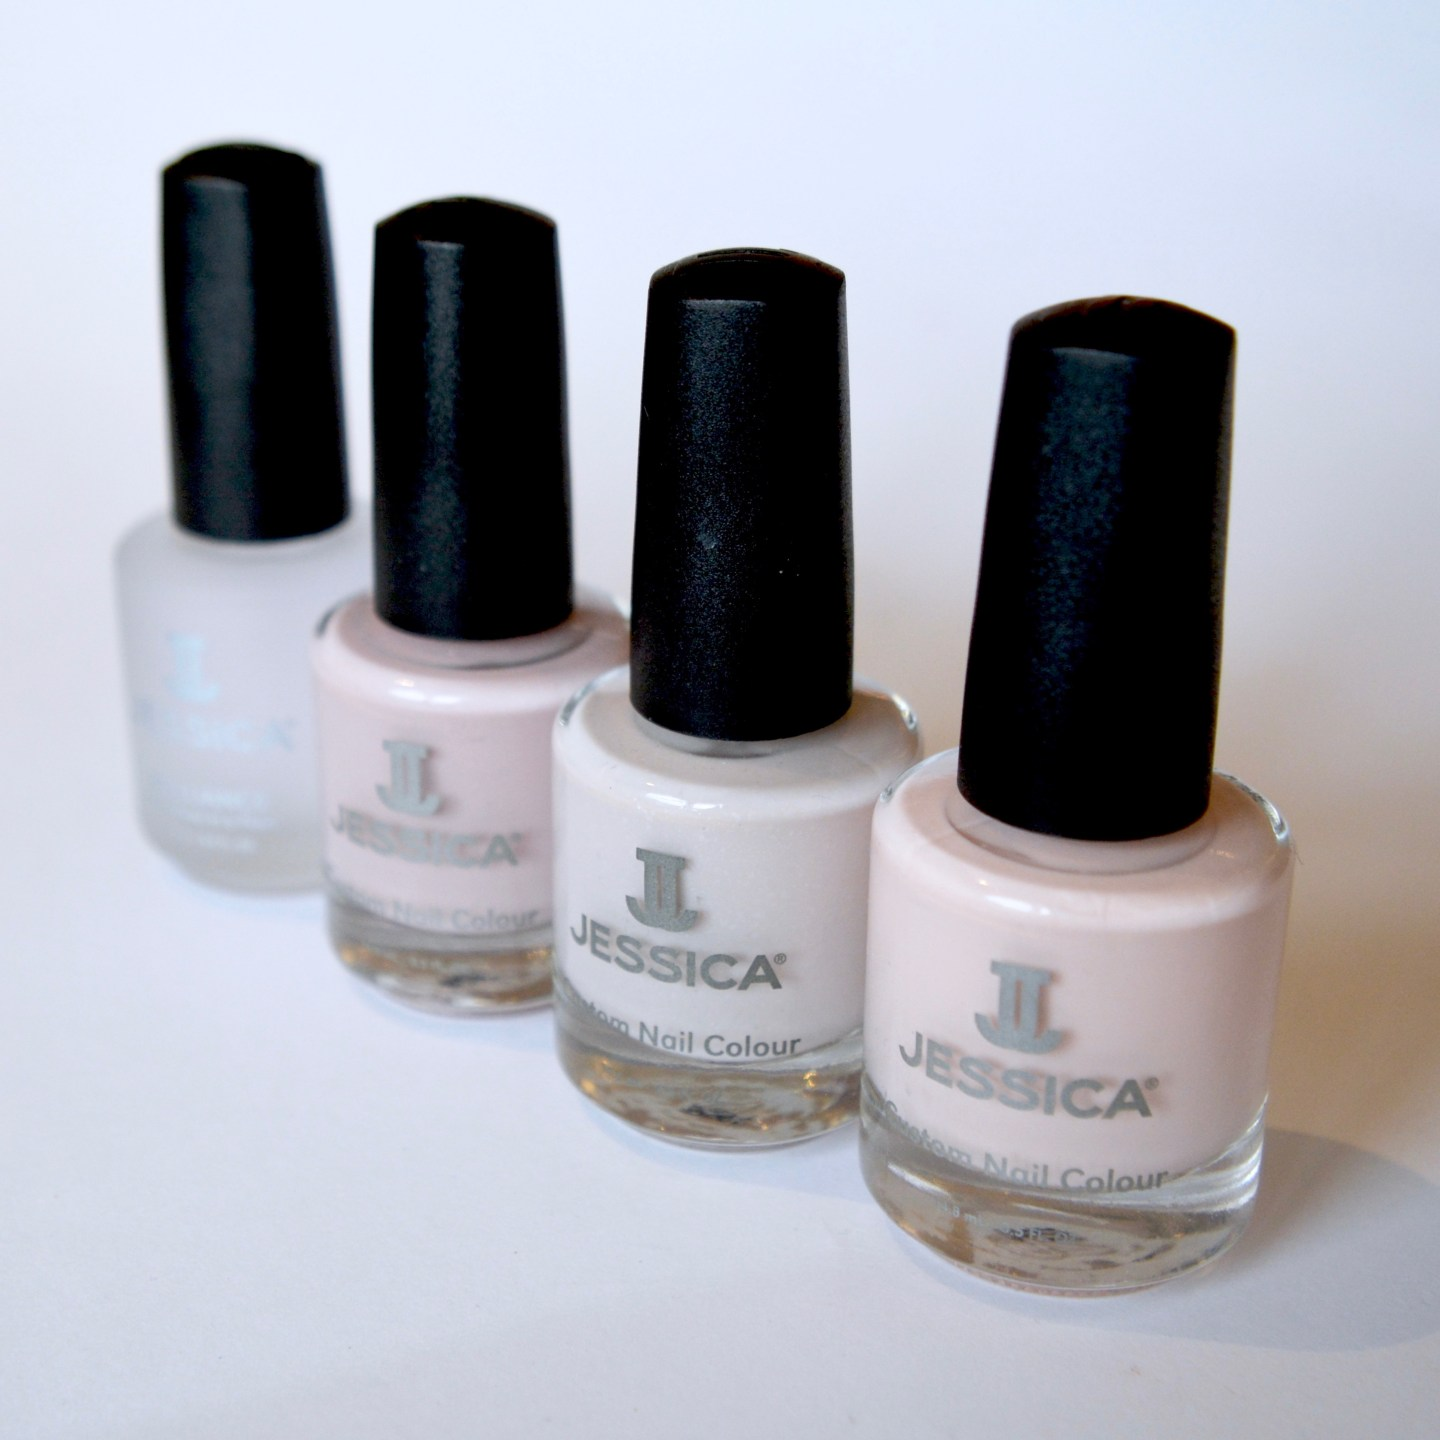 Jessica Silhouette Collection: 'Bare It All', 'Exposed', 'Tease', and Brilliance Top Coat